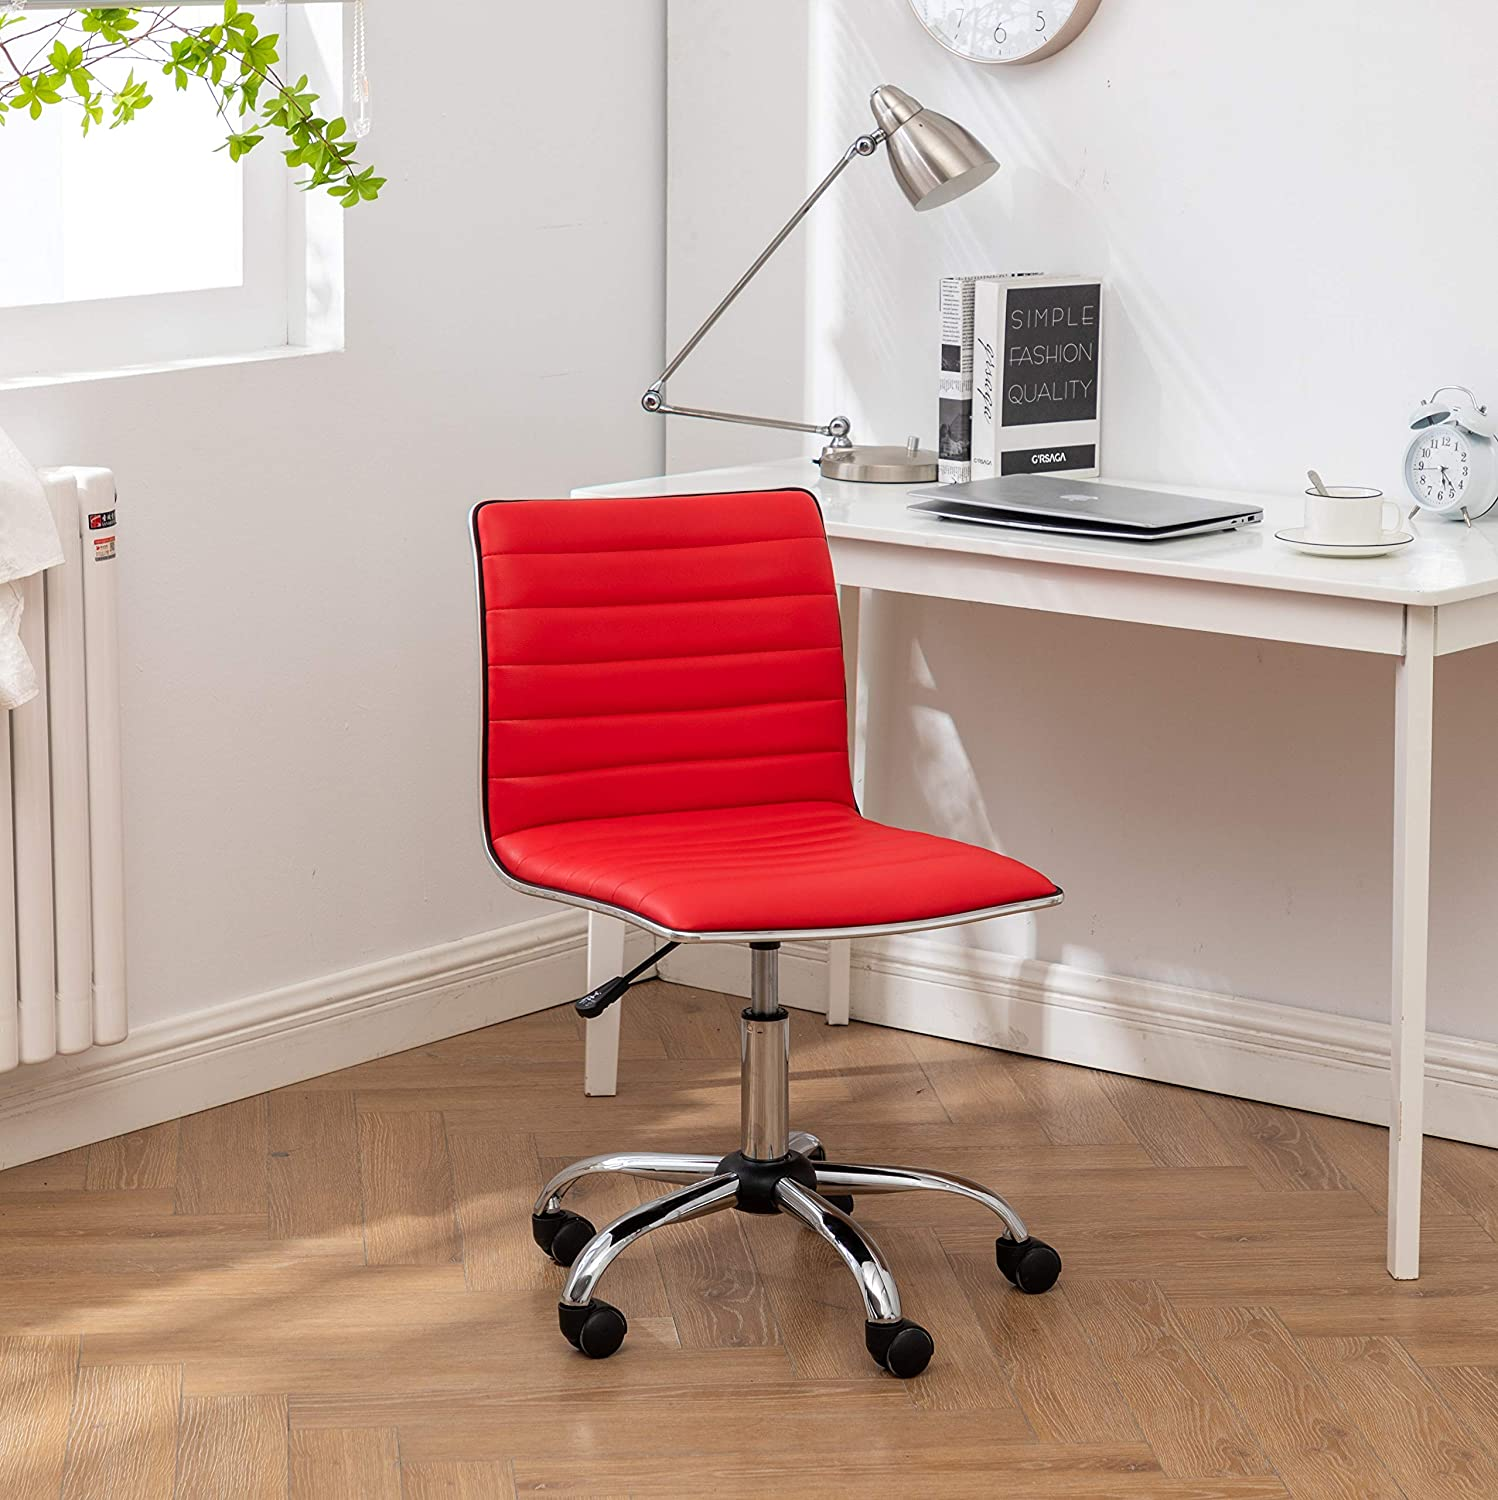 Roundhill Furniture Fremo Adjustable Air Lift Office Chair, Red